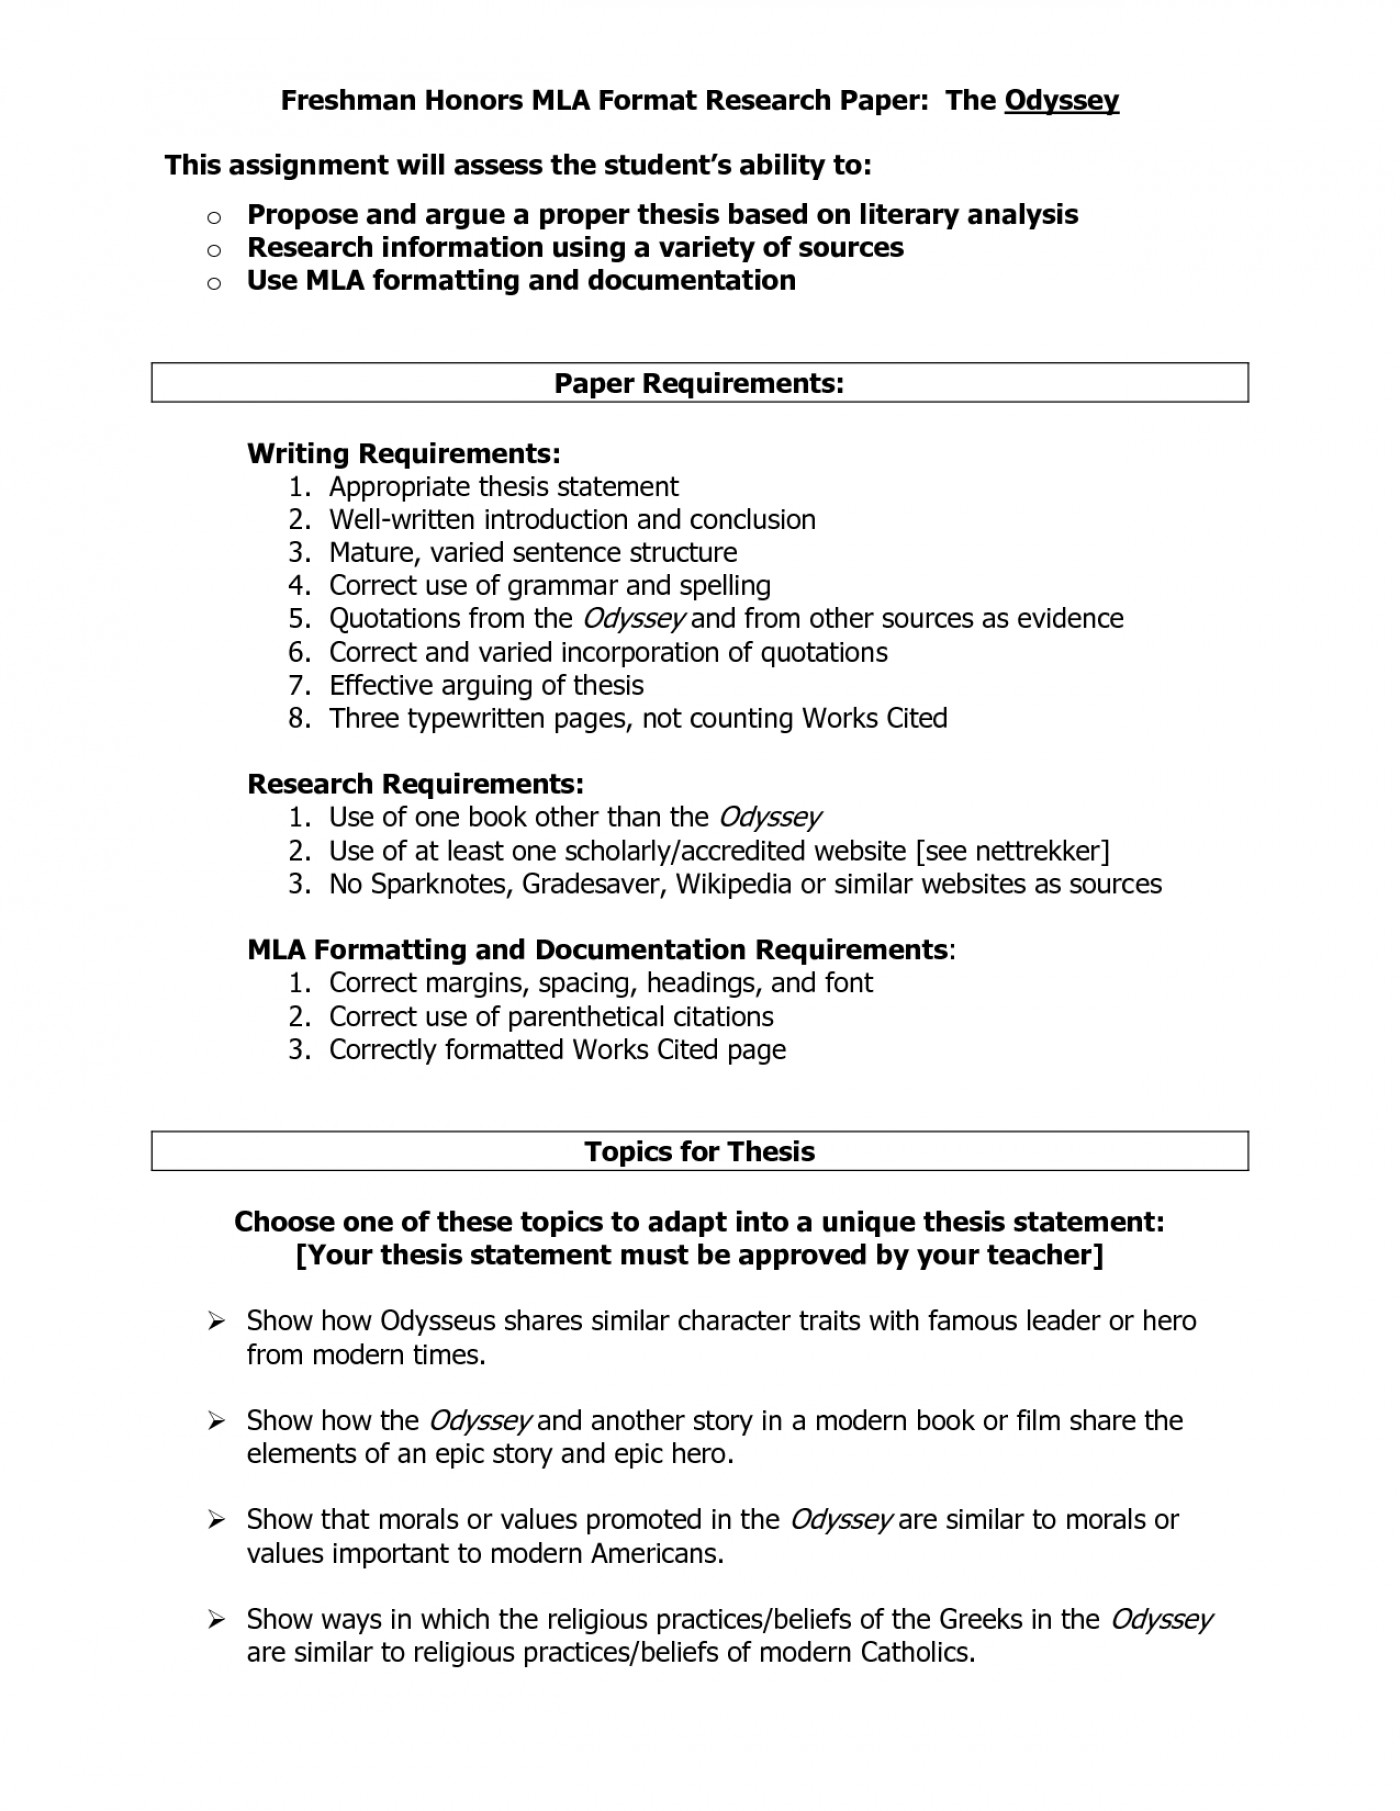 Essay on social media and youth development